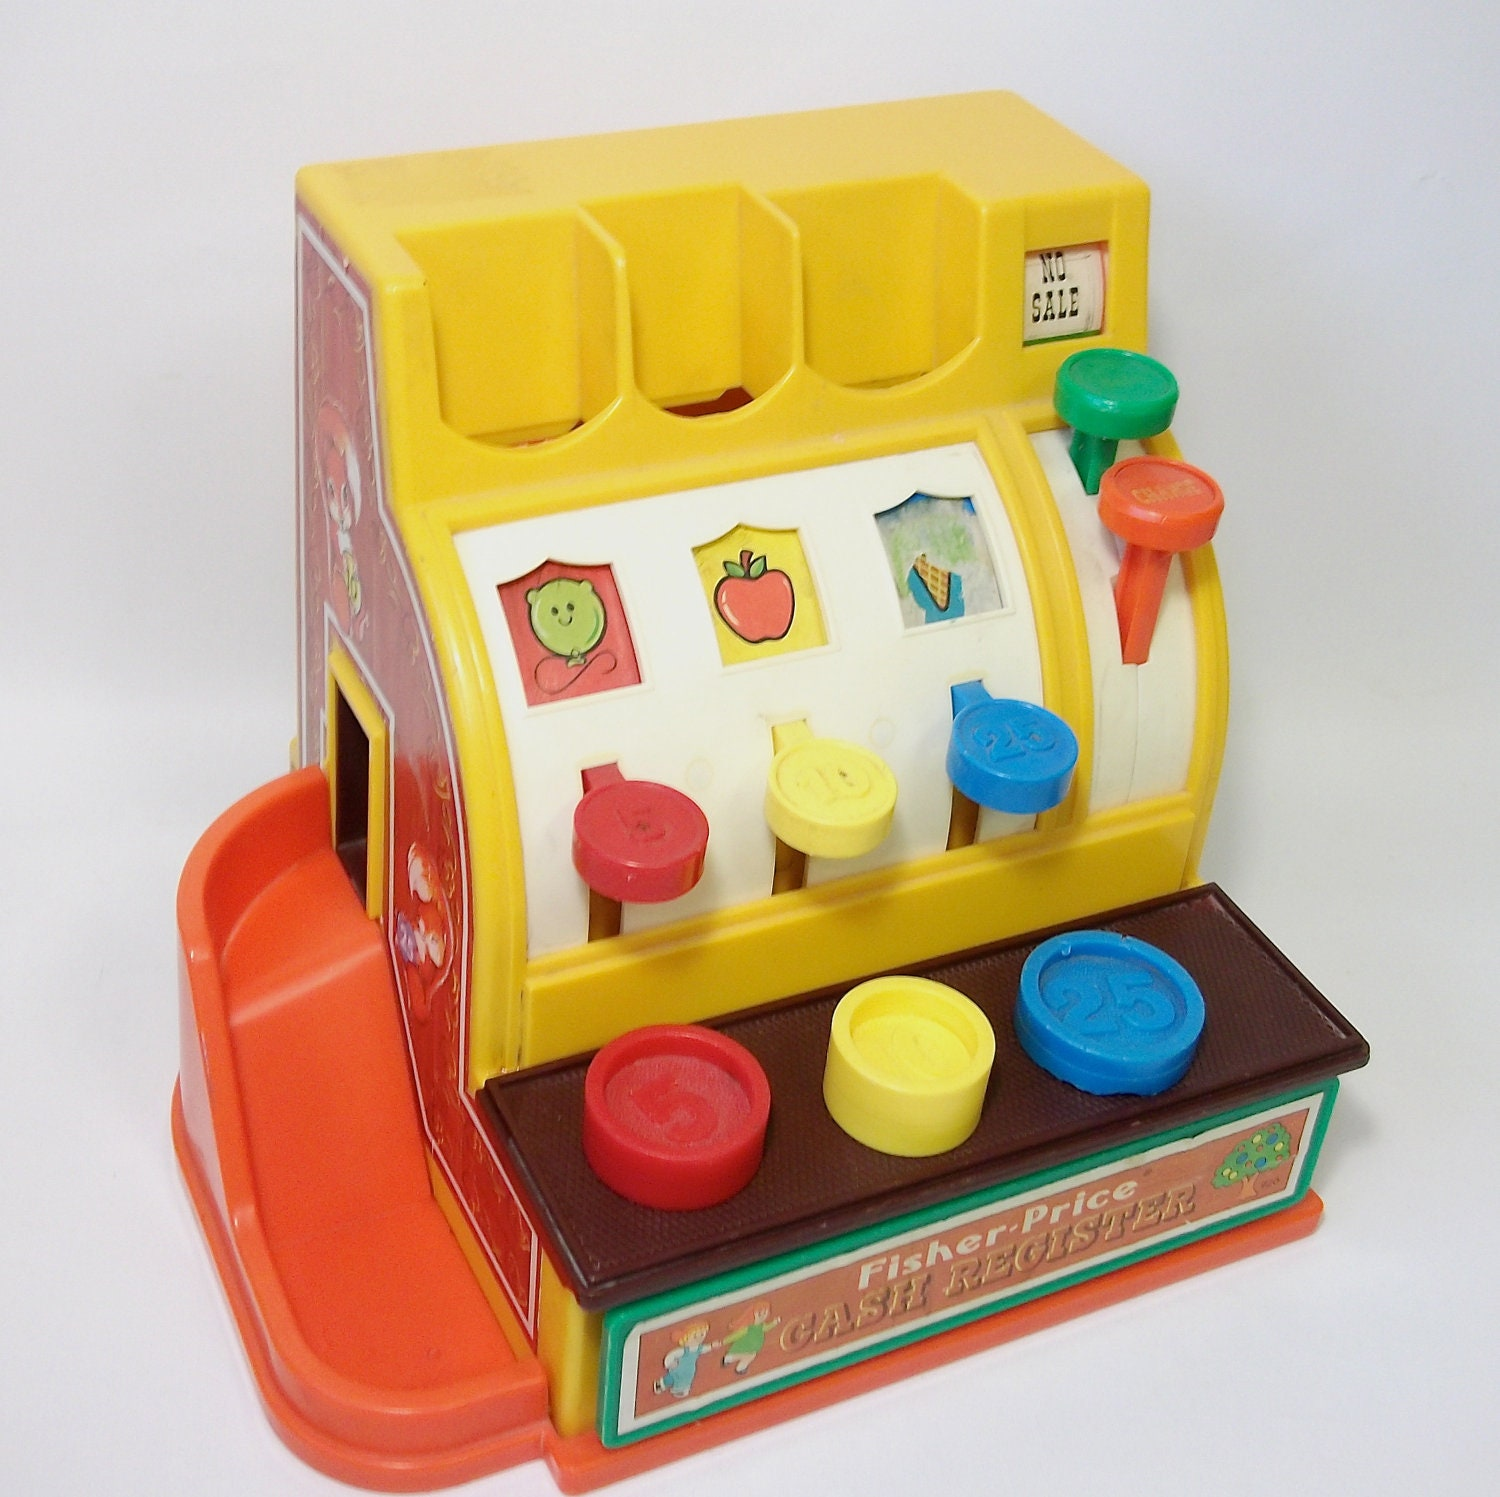 Classic Fisher Price Toys : Vintage fisher price cash register toy for